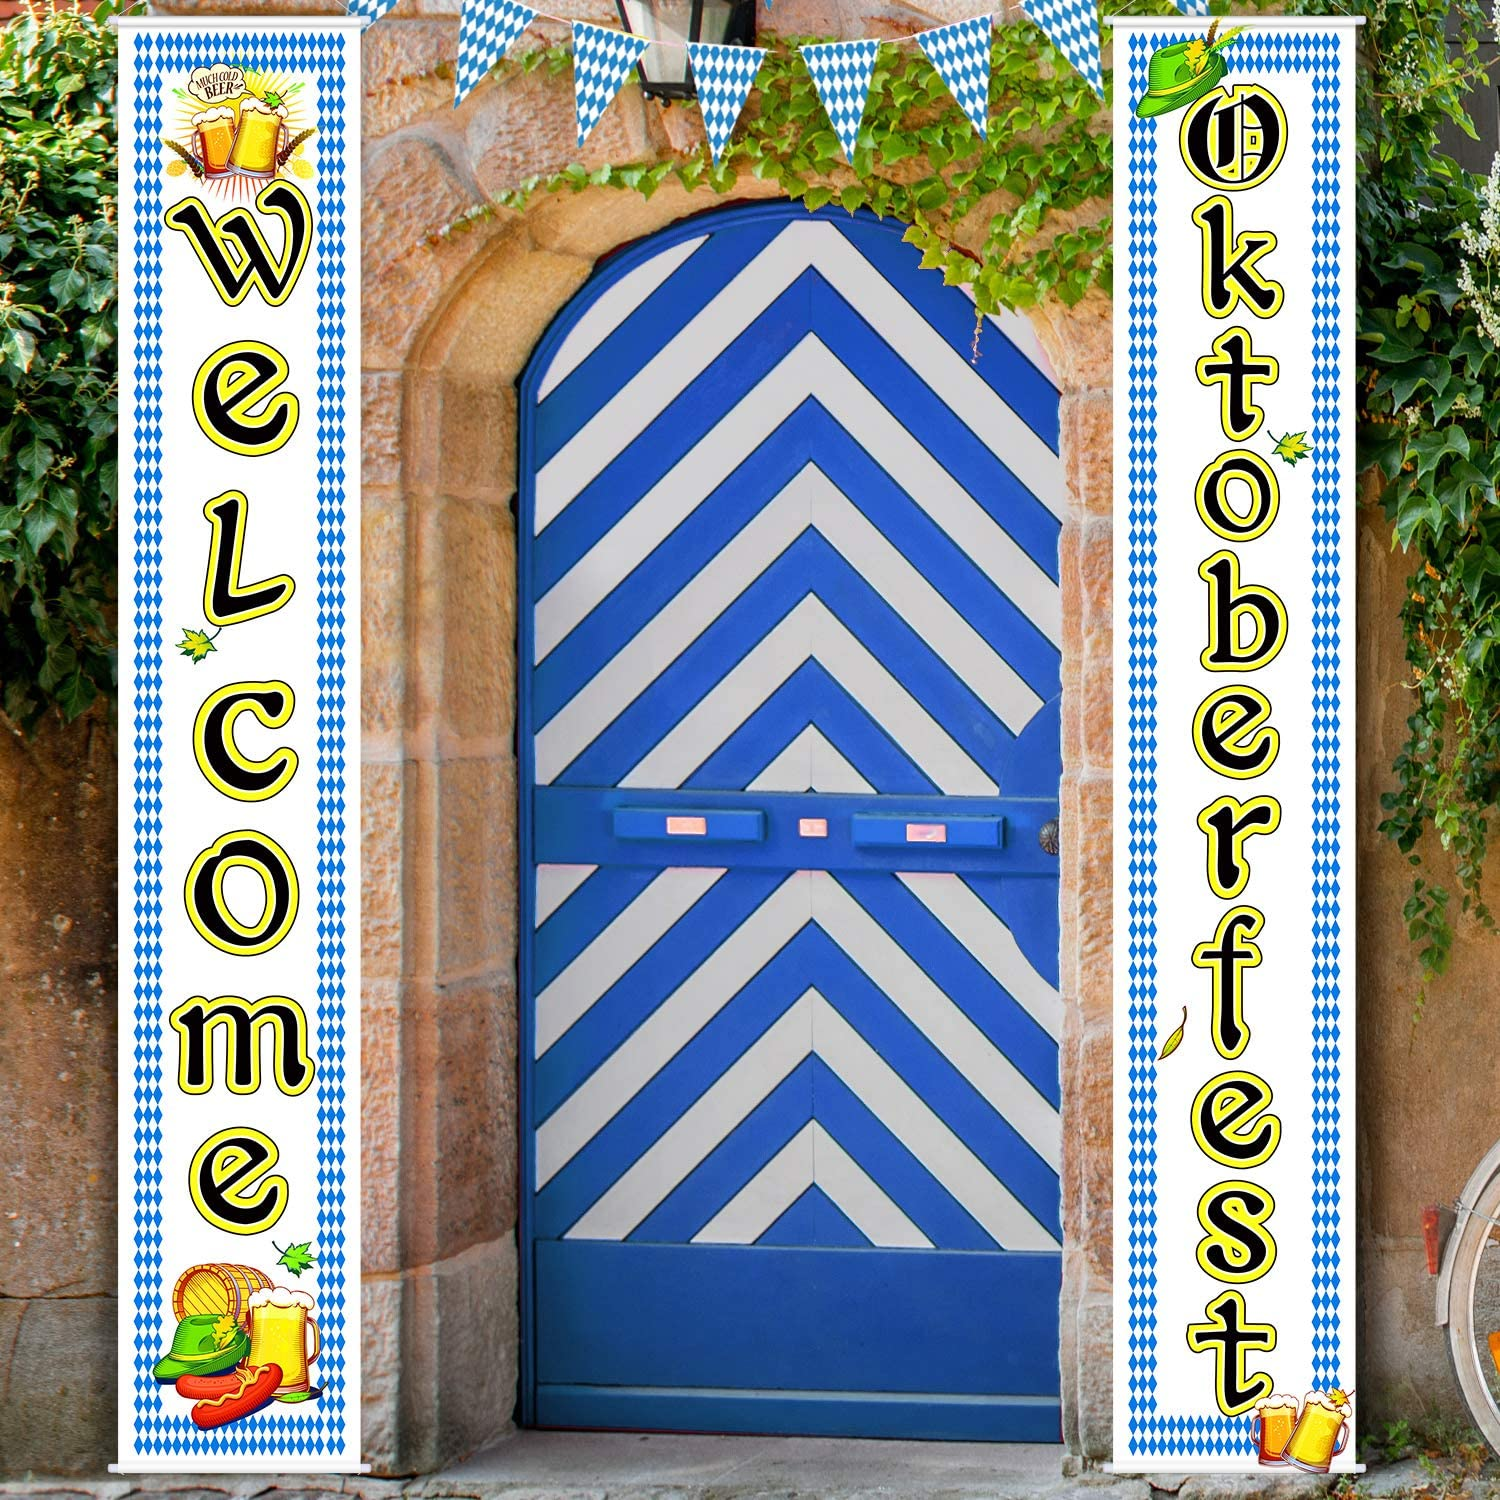 Oktoberfest Decorations Bavarian Flag Oktoberfest Sign Oktoberfest Porch Sign Welcome Banner for German Theme Parade Decoration Beer Festival Banner Party Accessory (Blue, 12 x 72 Inch)